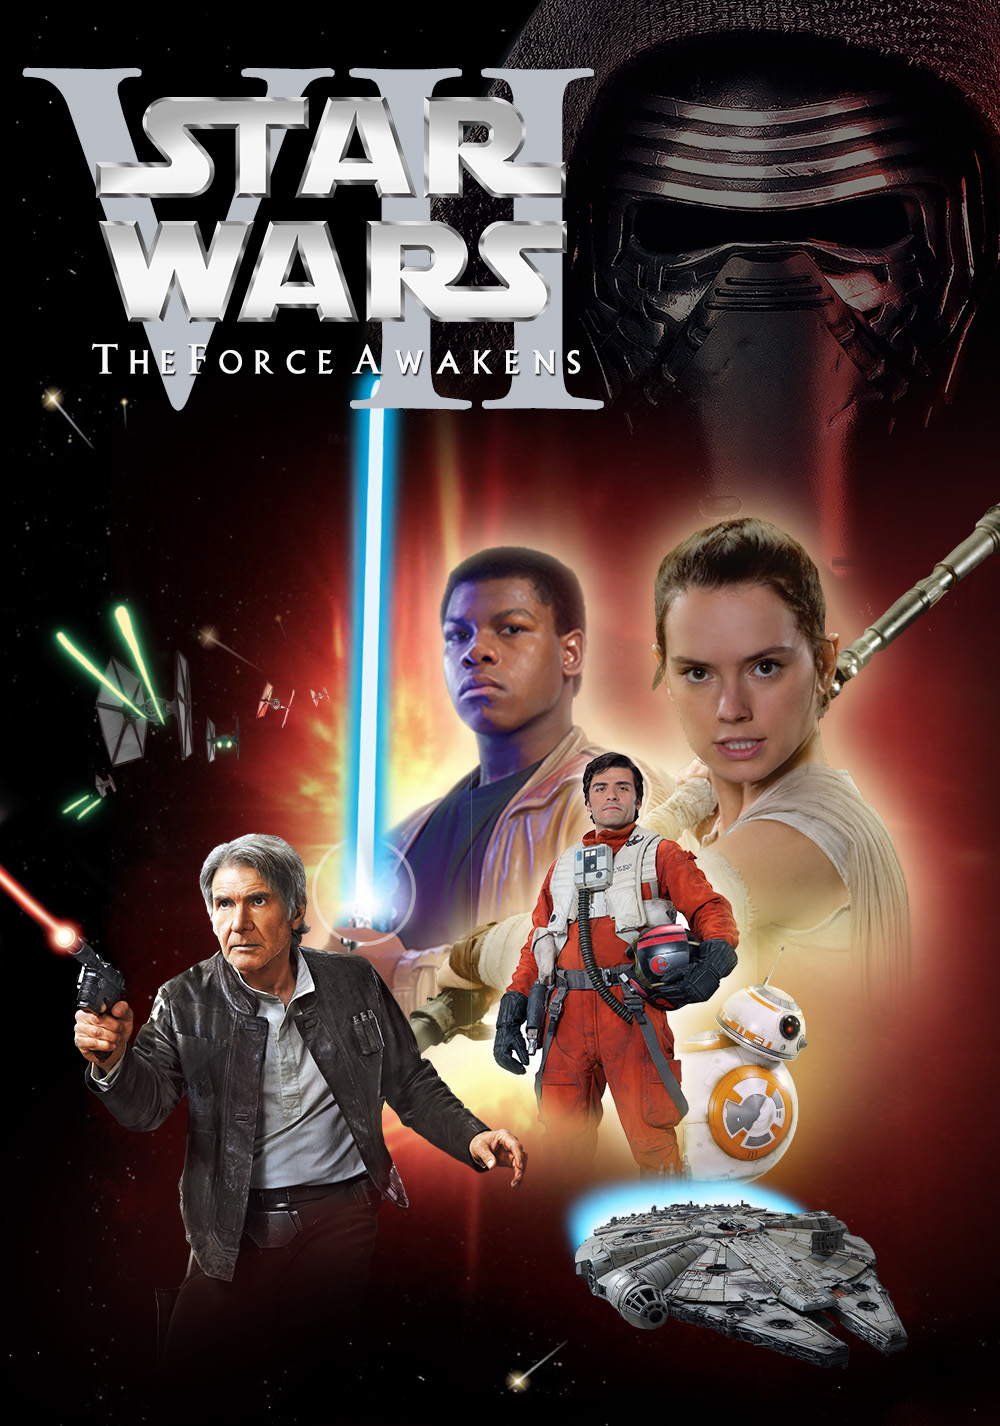 Star Wars Episode VII The Force Awakens DVD cover. by ...